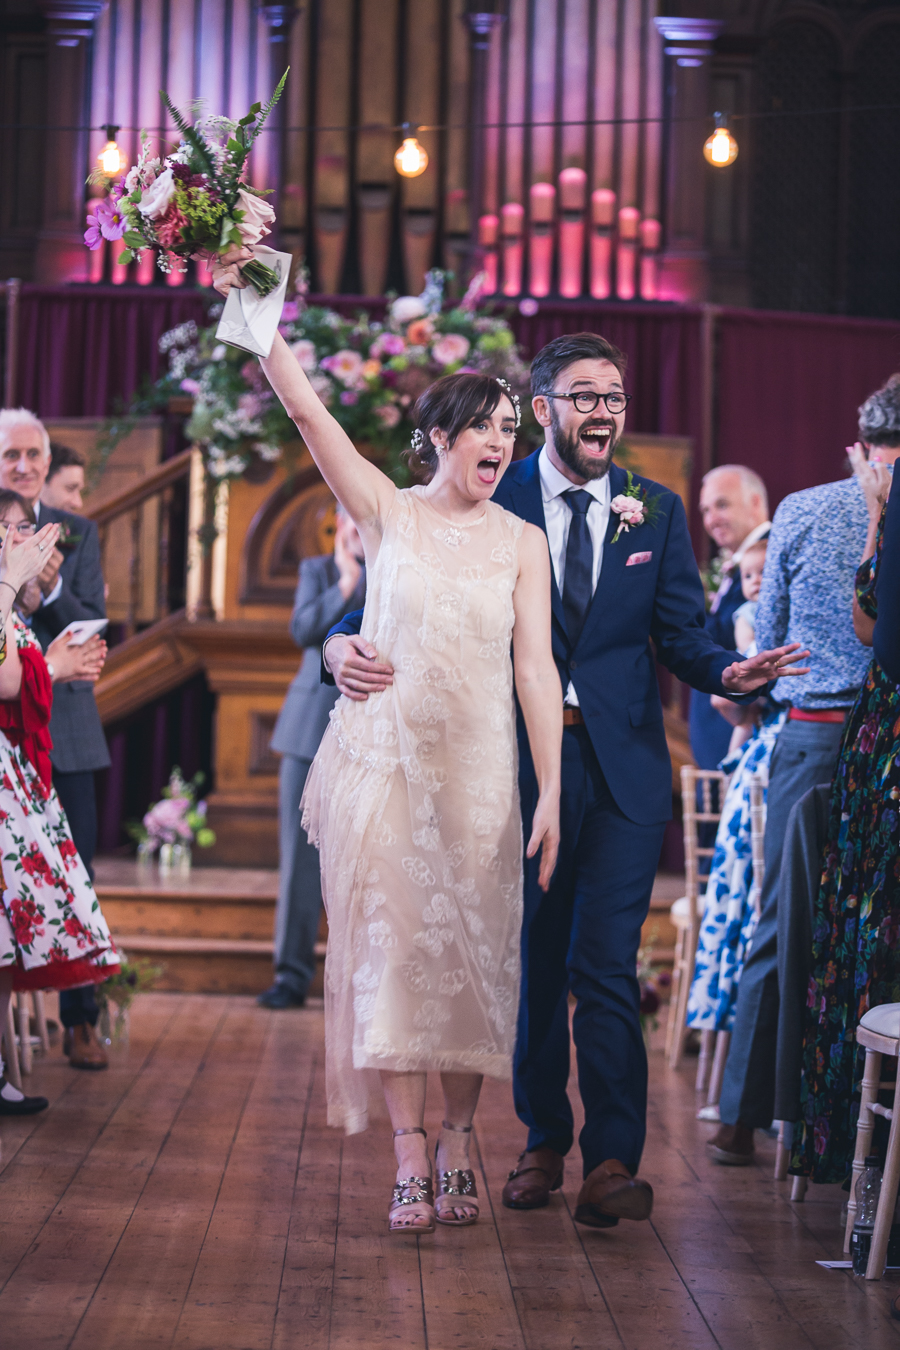 Eclectic, individual and timeless wedding styling at Hackney Round Chapel with images by Sam Taylor Photography (11)